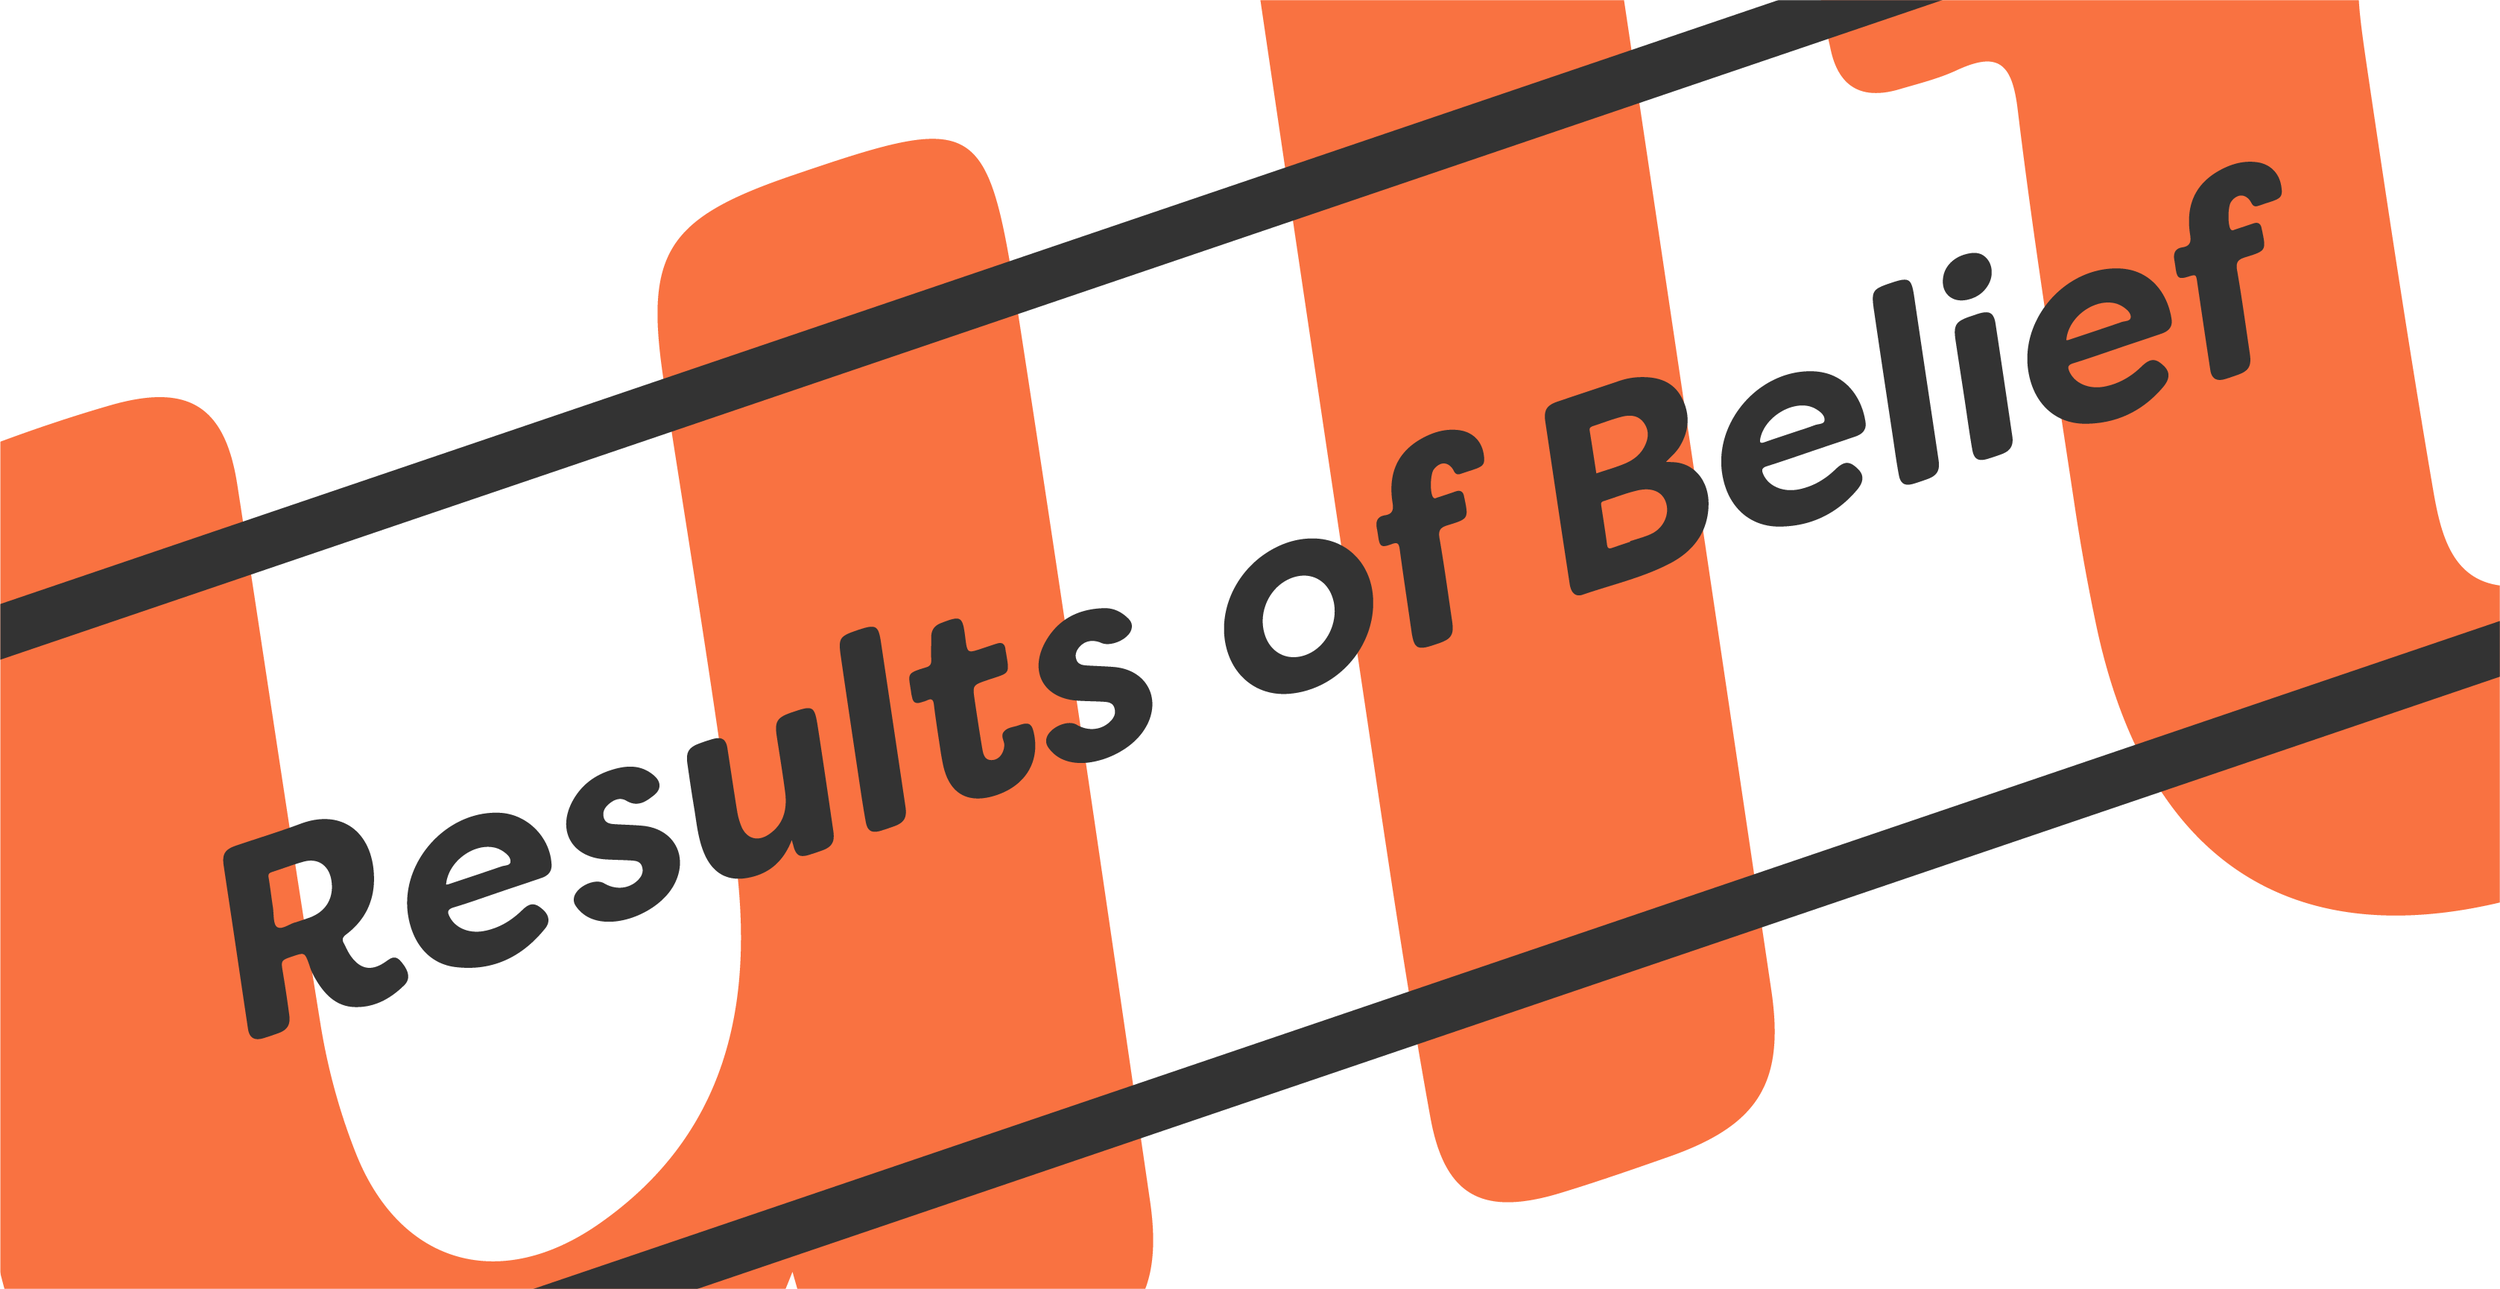 Results of Belief-01.png